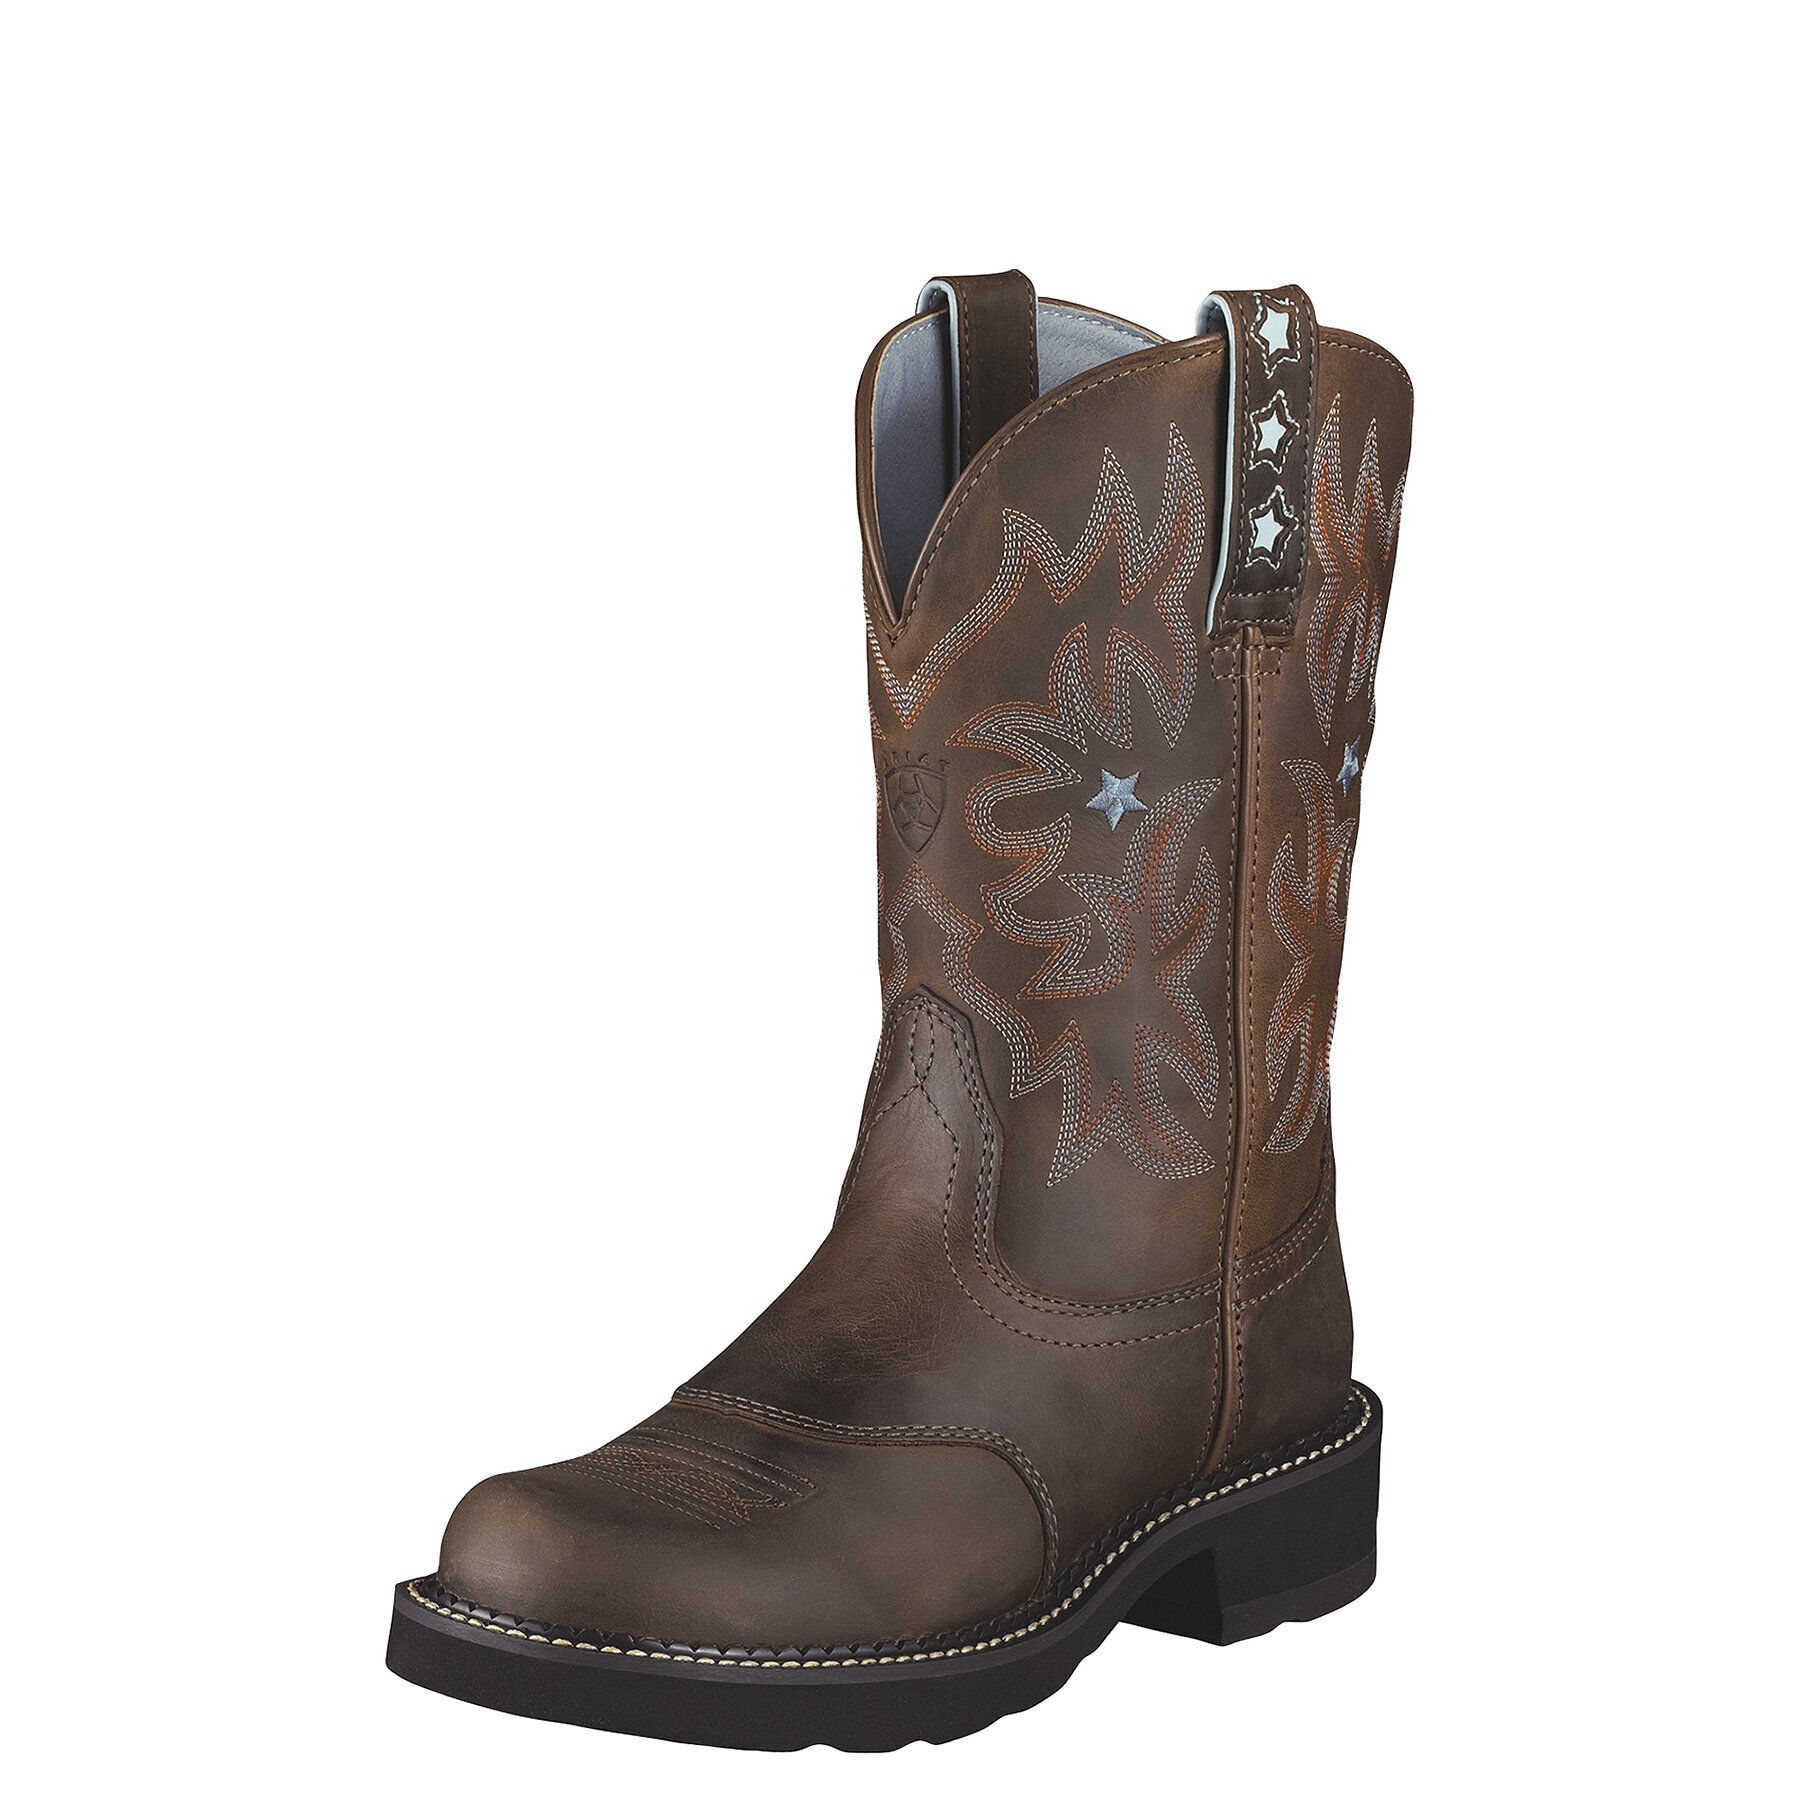 Women's Probaby Western Boots in Driftwood Brown by Ariat